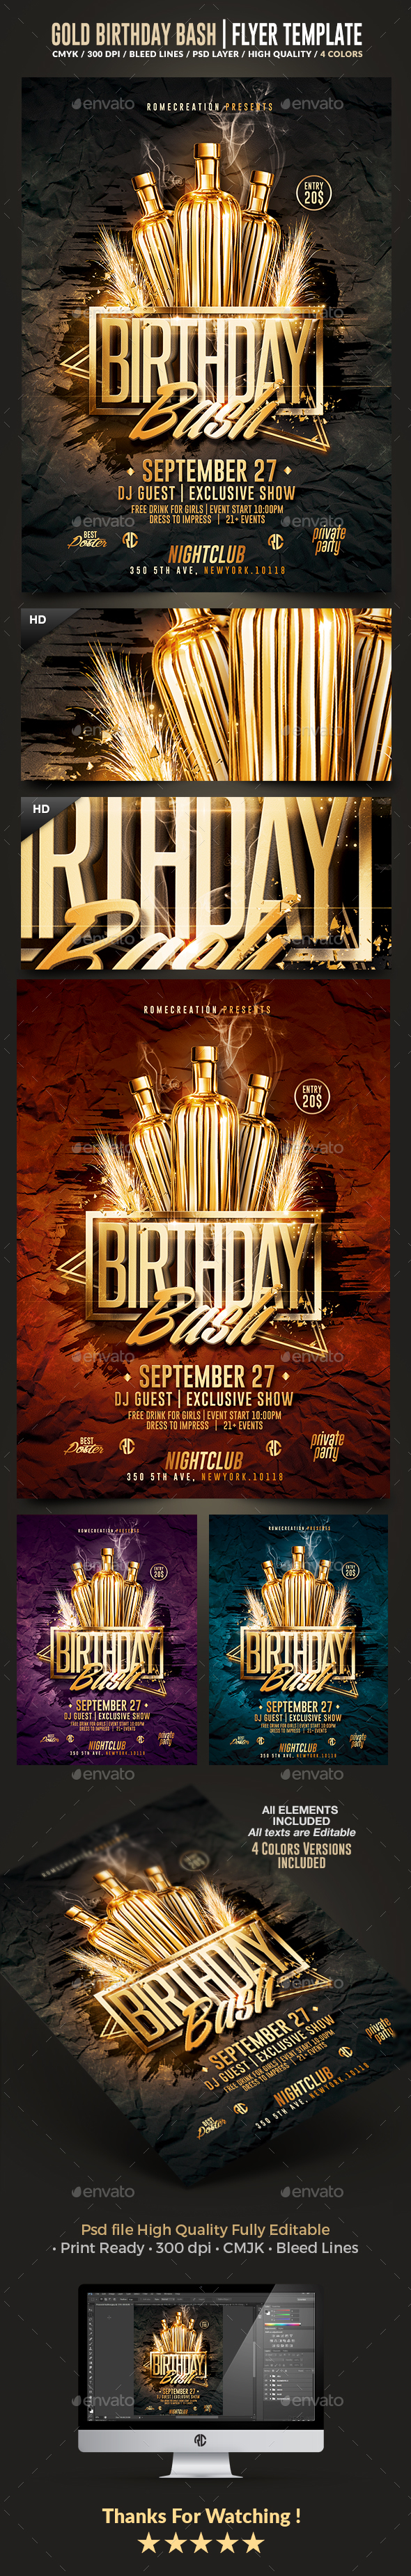 Gold Birthday Bash | Psd Flyer Template - Flyers Print Templates